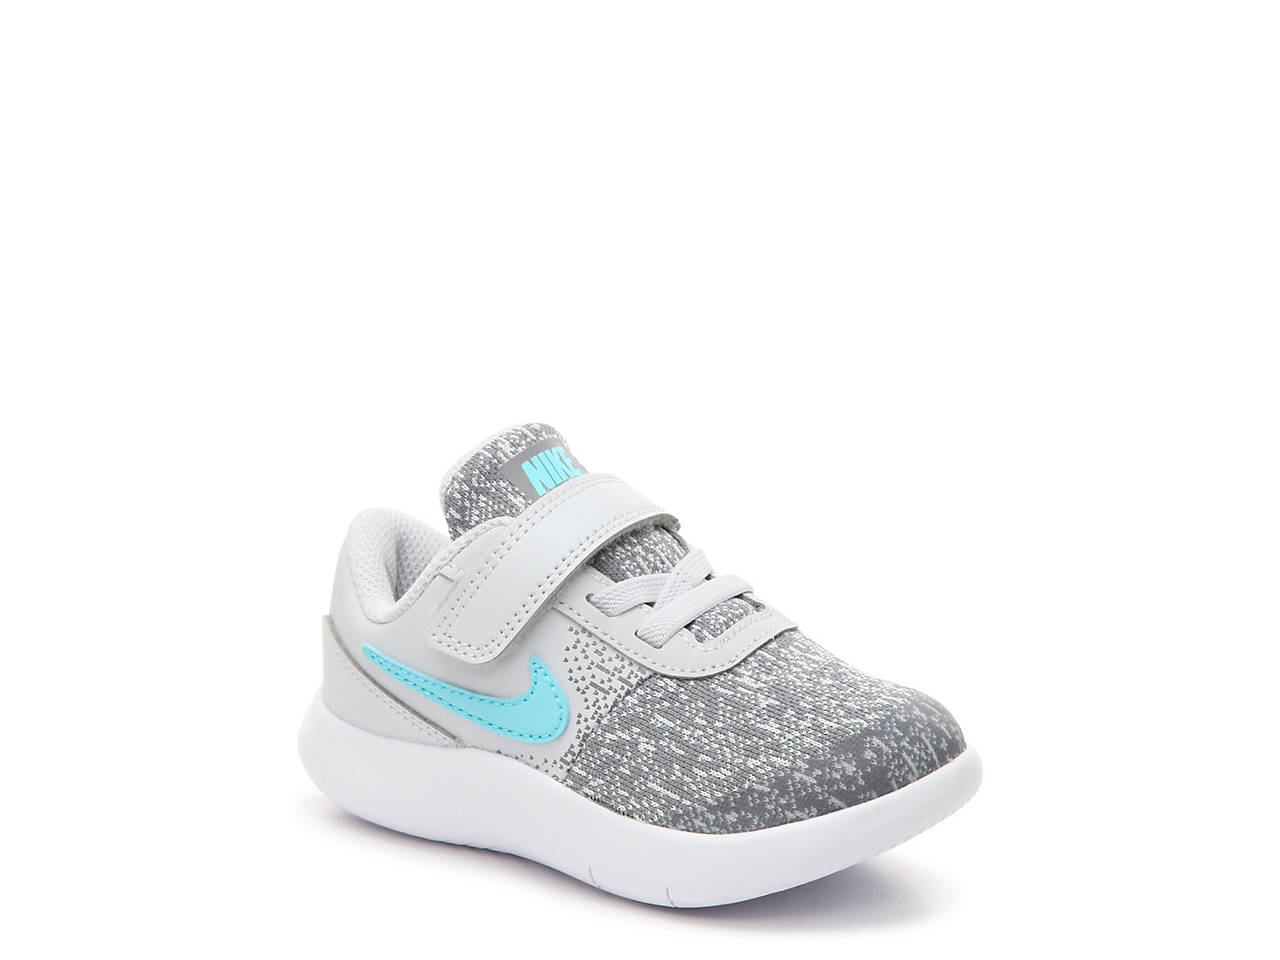 b111c99cabd6 Nike Flex Contact Toddler Sneaker Kids Shoes